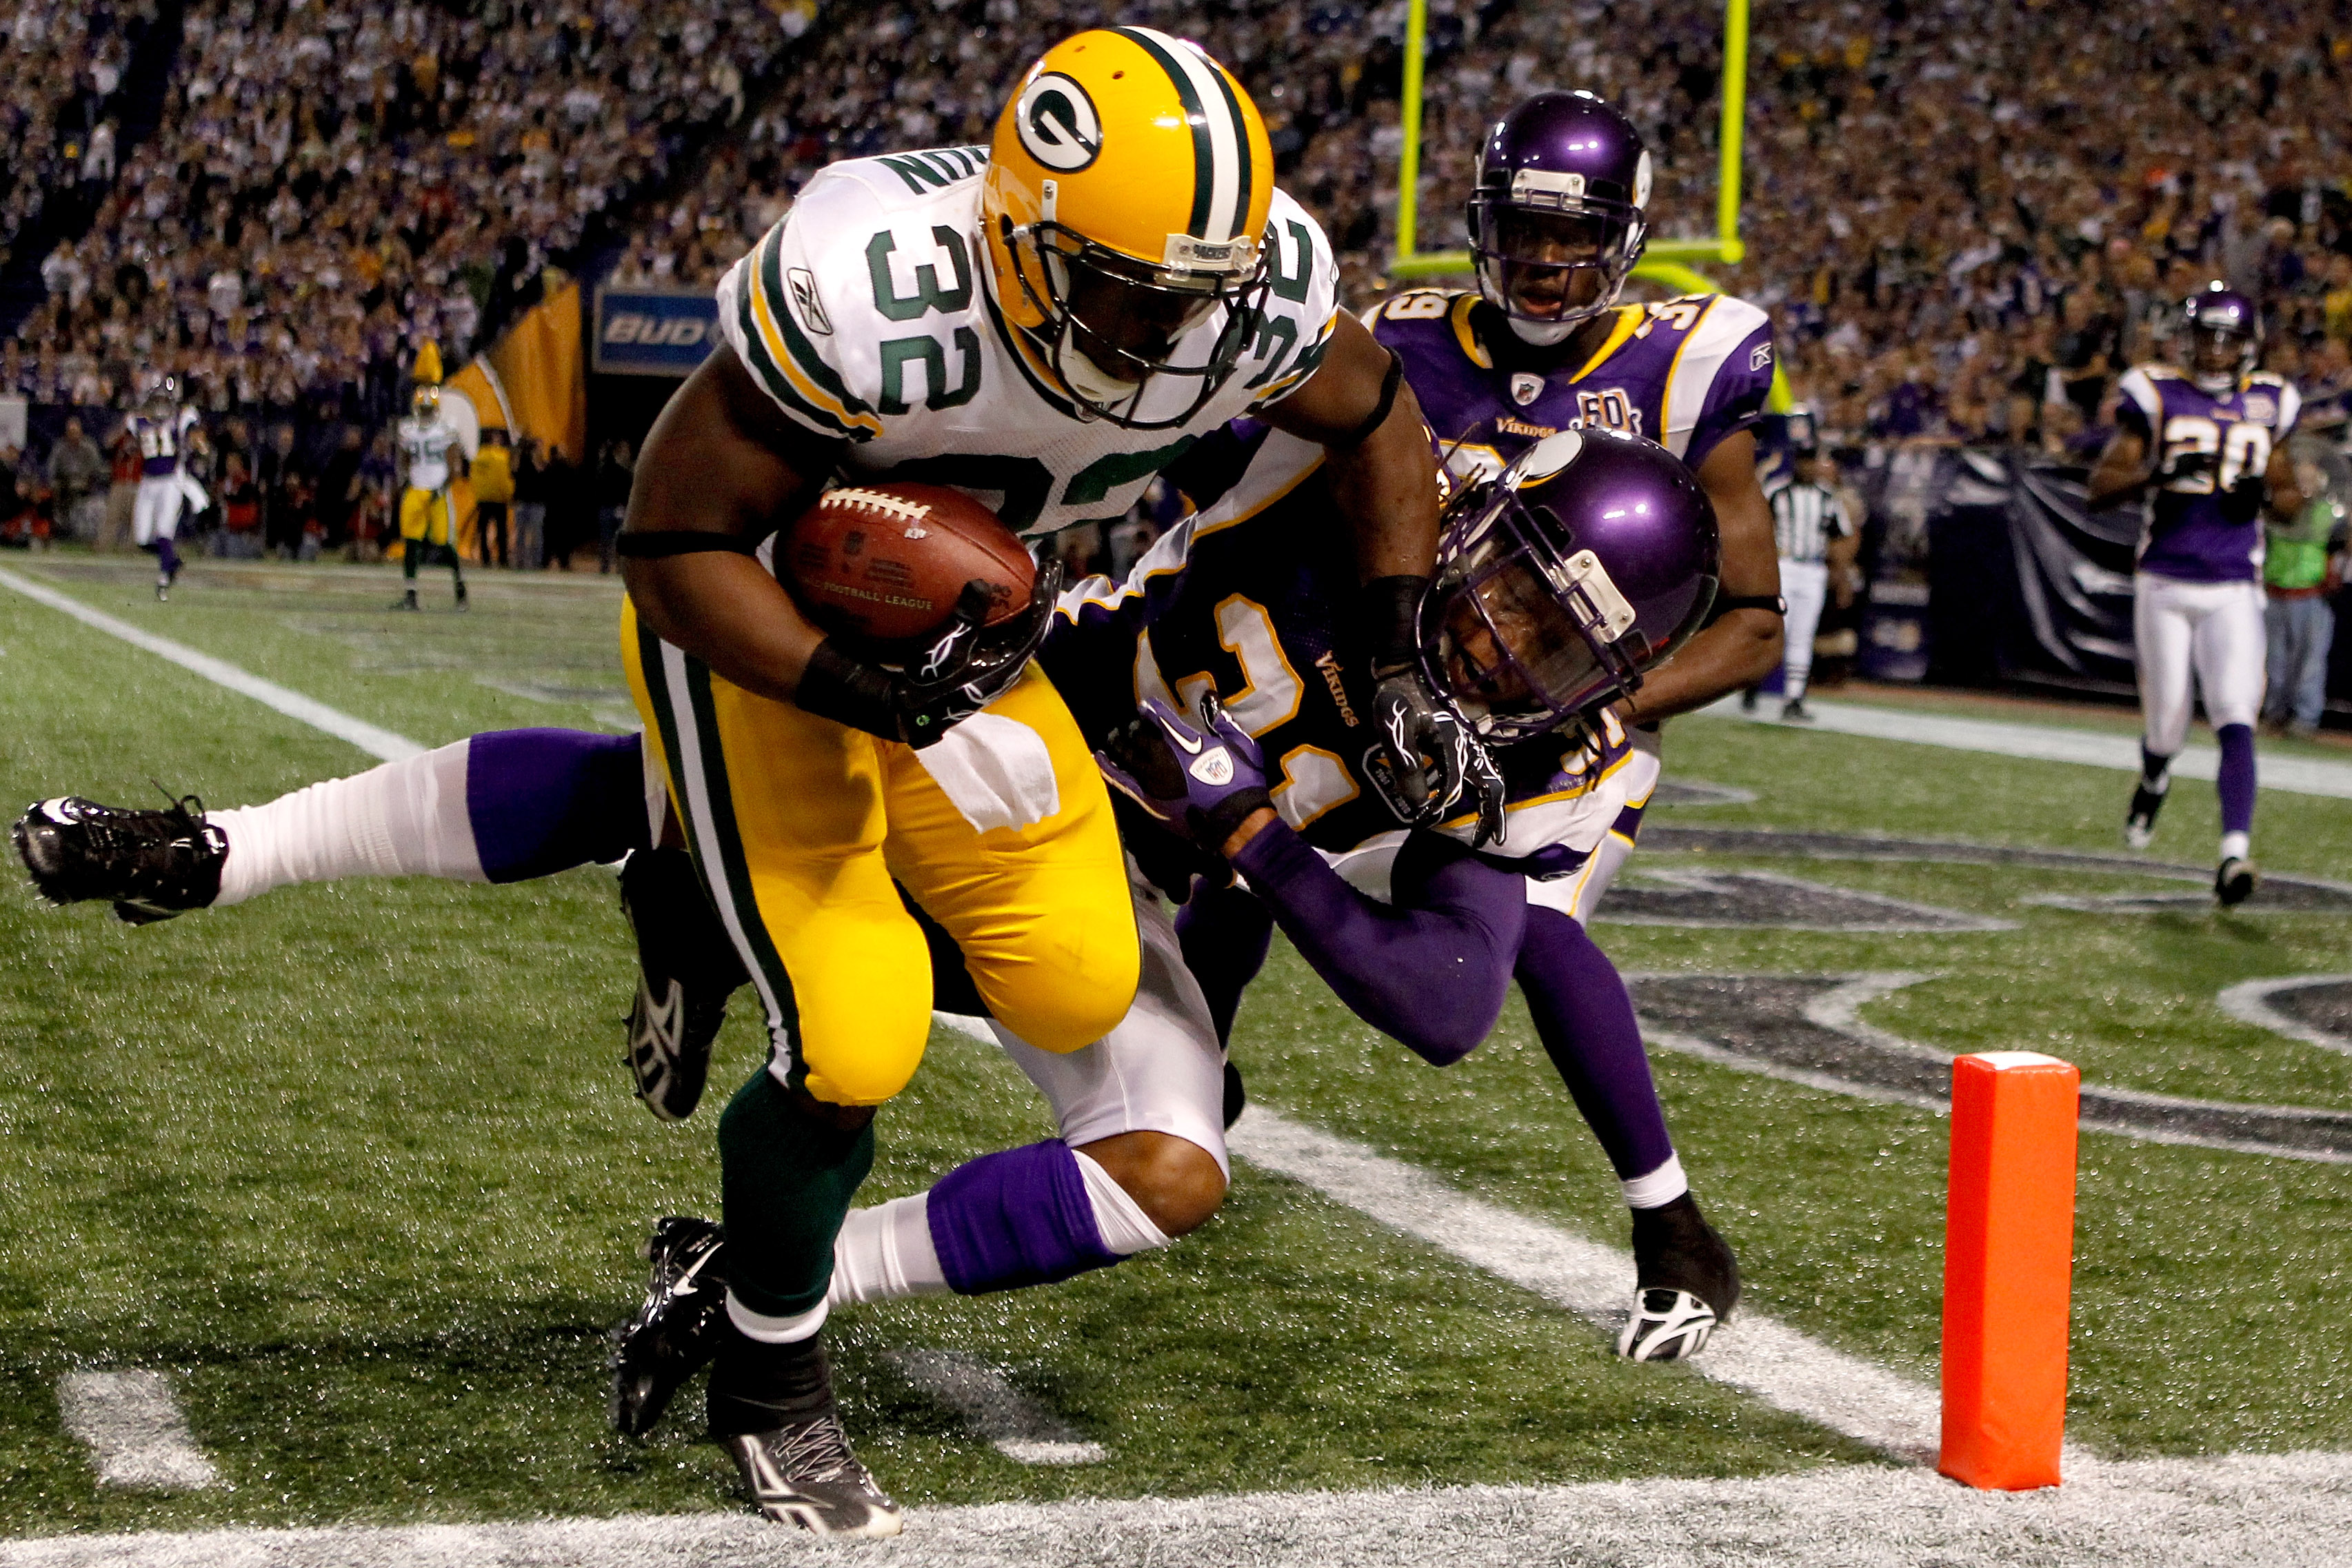 MINNEAPOLIS - NOVEMBER 21:  Brandon Jackson #32 of the Green Bay Packers is kept from scoring by Chris Cook #31 of the Minnesota Vikings at the Hubert H. Humphrey Metrodome on November 21, 2010 in Minneapolis, Minnesota.  (Photo by Matthew Stockman/Getty